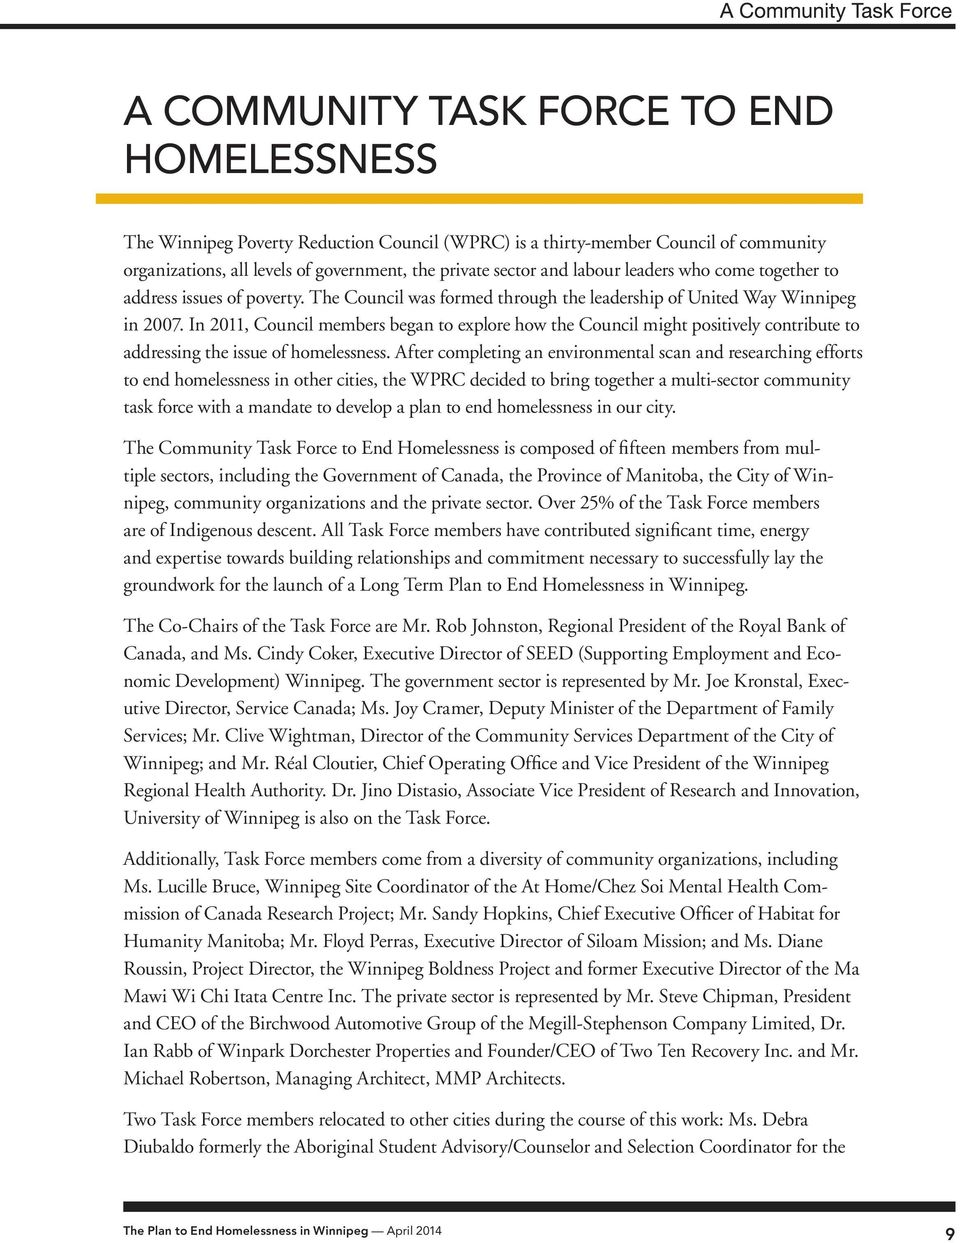 In 2011, Council members began to explore how the Council might positively contribute to addressing the issue of homelessness.